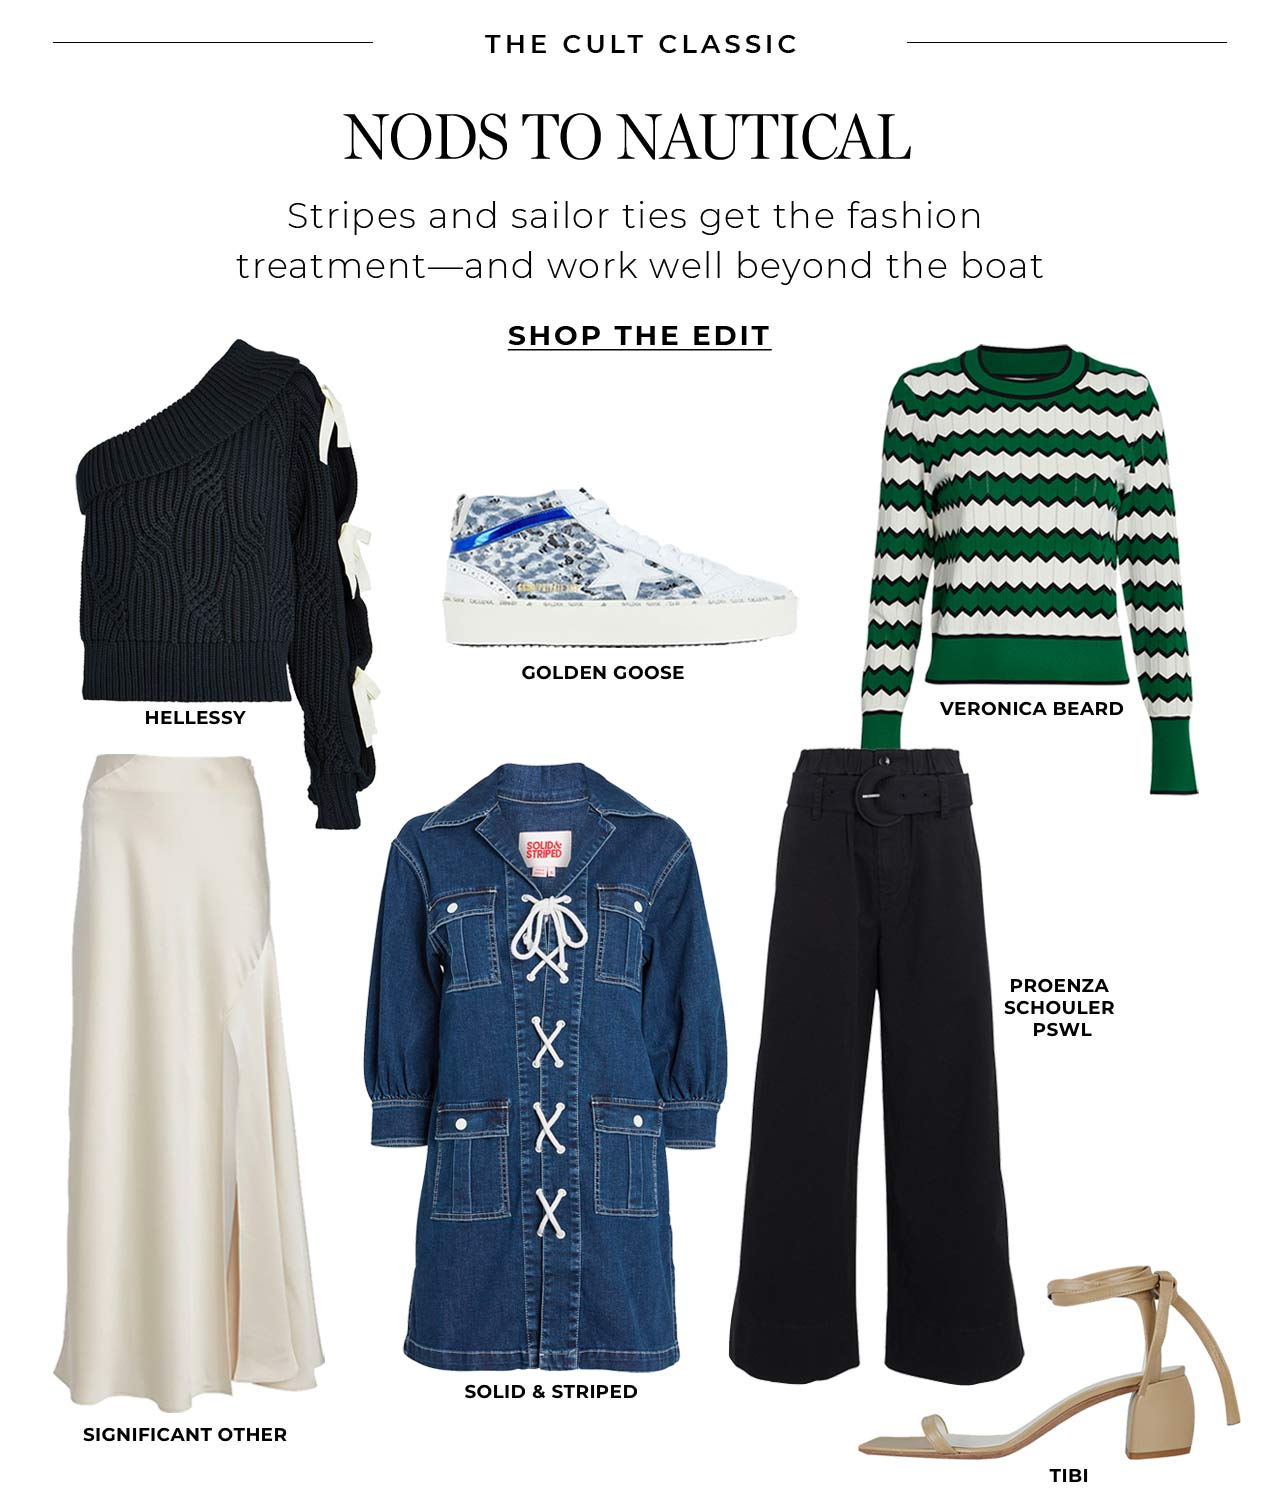 Stripes and sailor ties get the fashion treatment – and these nods to nautical work well beyond the boat